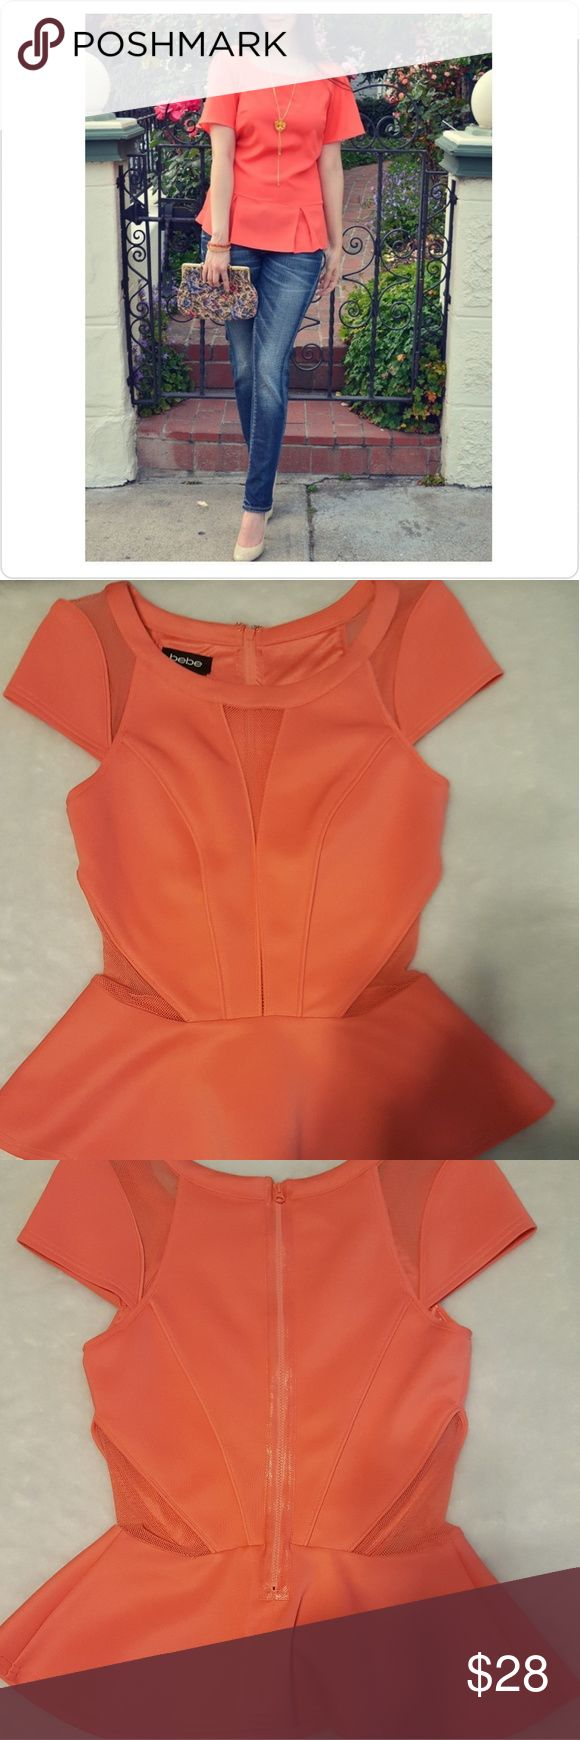 bebe coral peplum bodycon top Perefect top to pair along with jeans and nude heels  Details  *Sz P/S...fits 1/2 inch shorter  *1 small spot directly to right side of mesh right under neckline/easily camaflouged while wearing a statement necklace *Worn 1 time *EUC *Zip up and snap closure bebe Tops Blouses